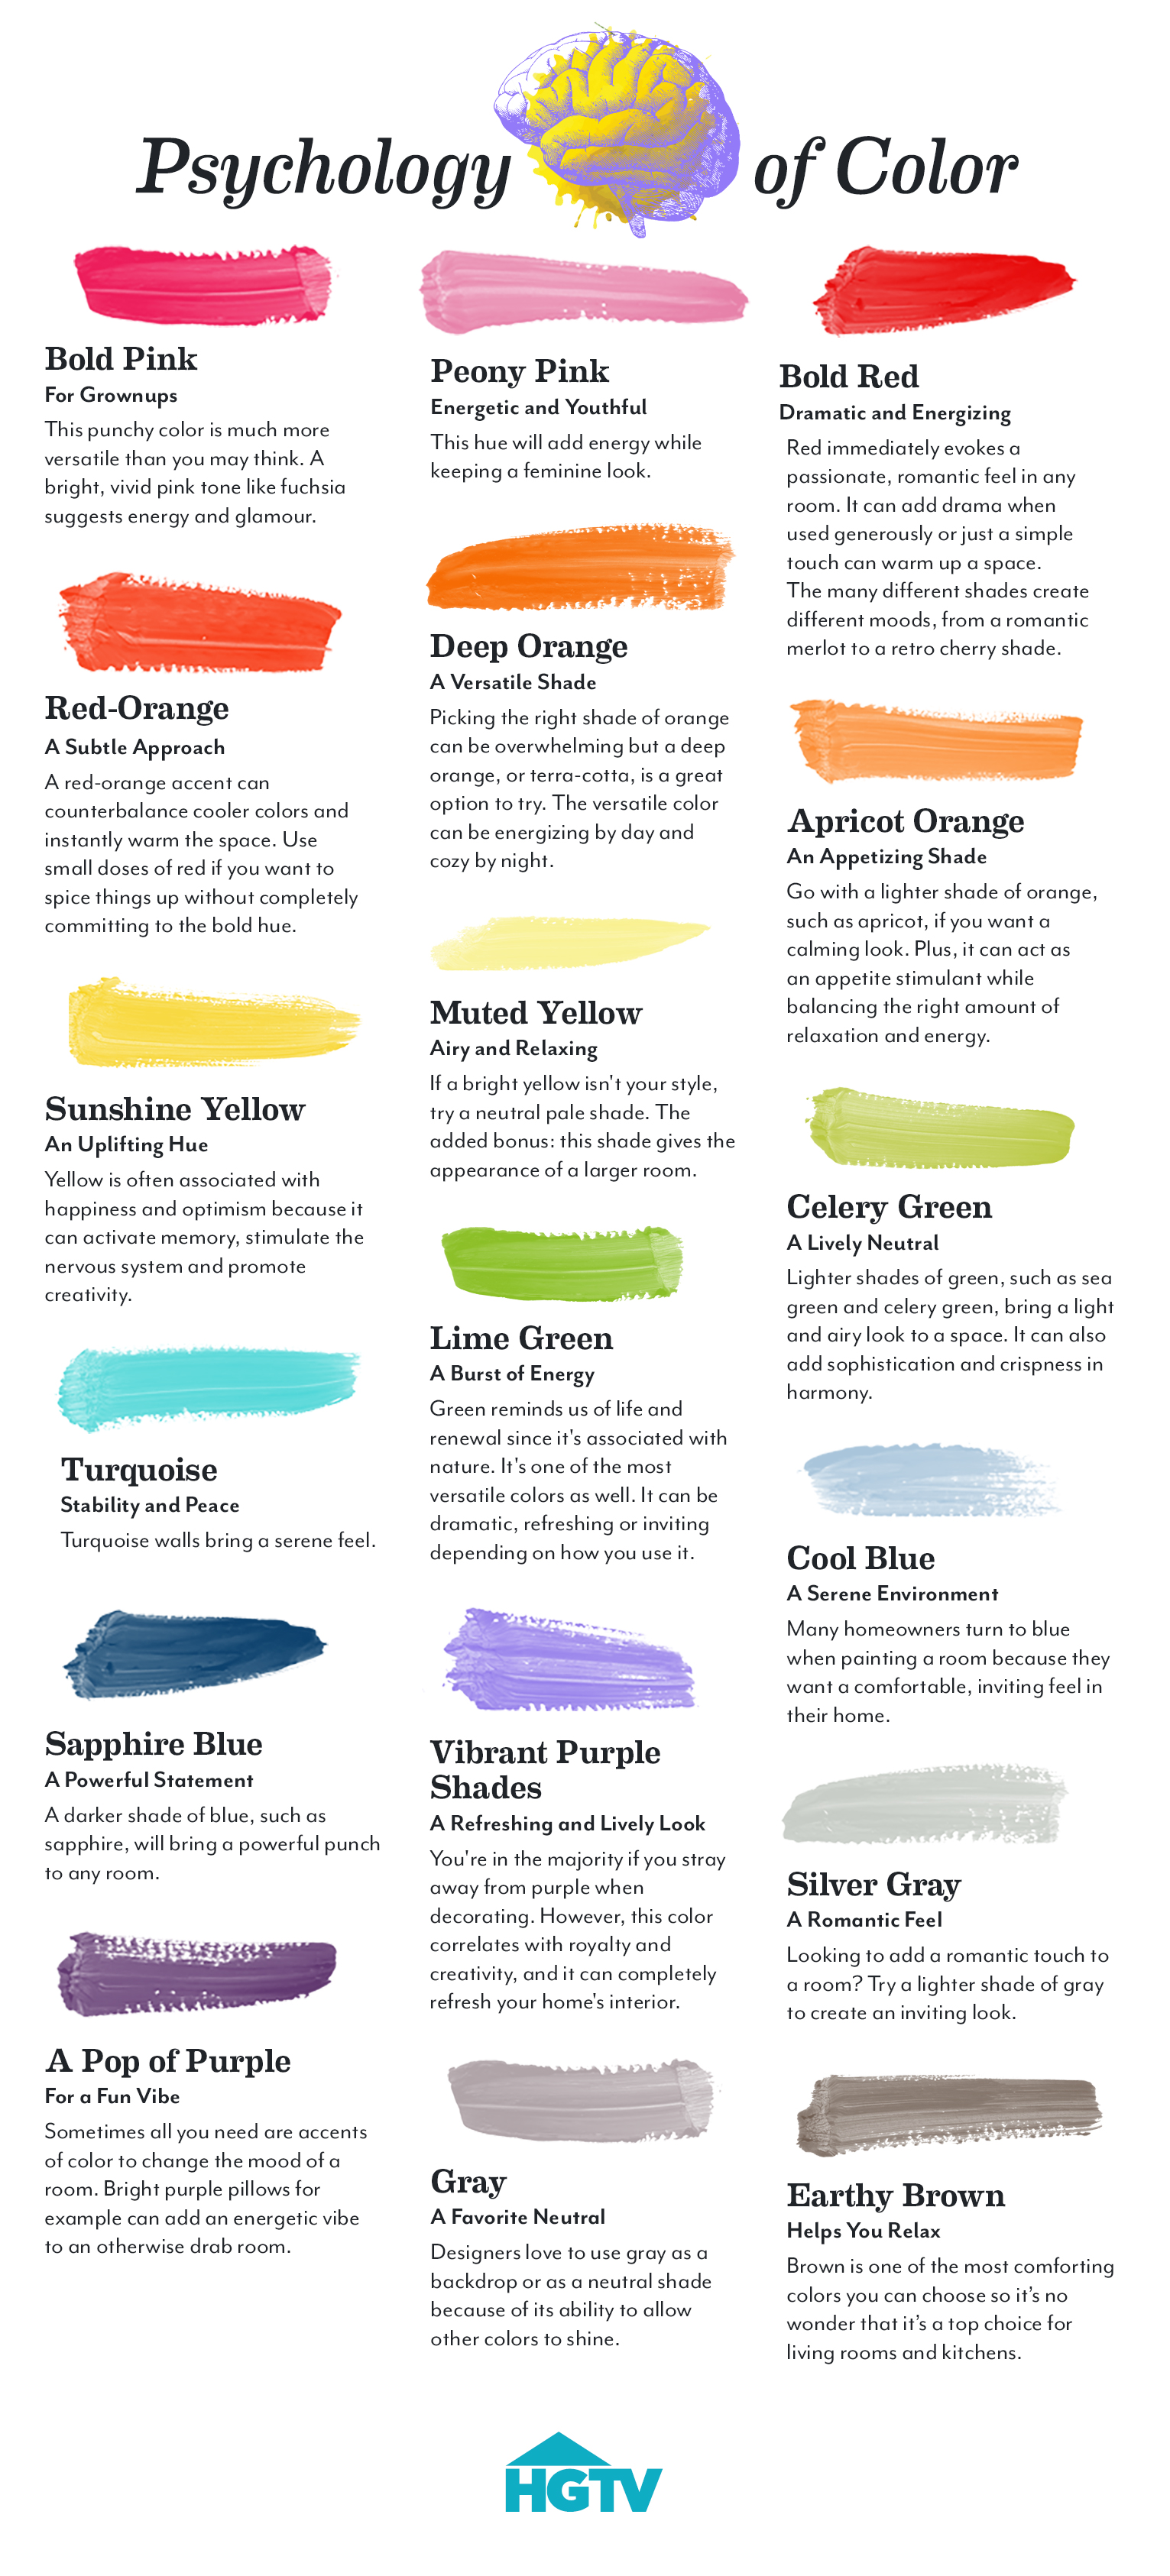 Make Your Home a Happier Place with Color Psychology